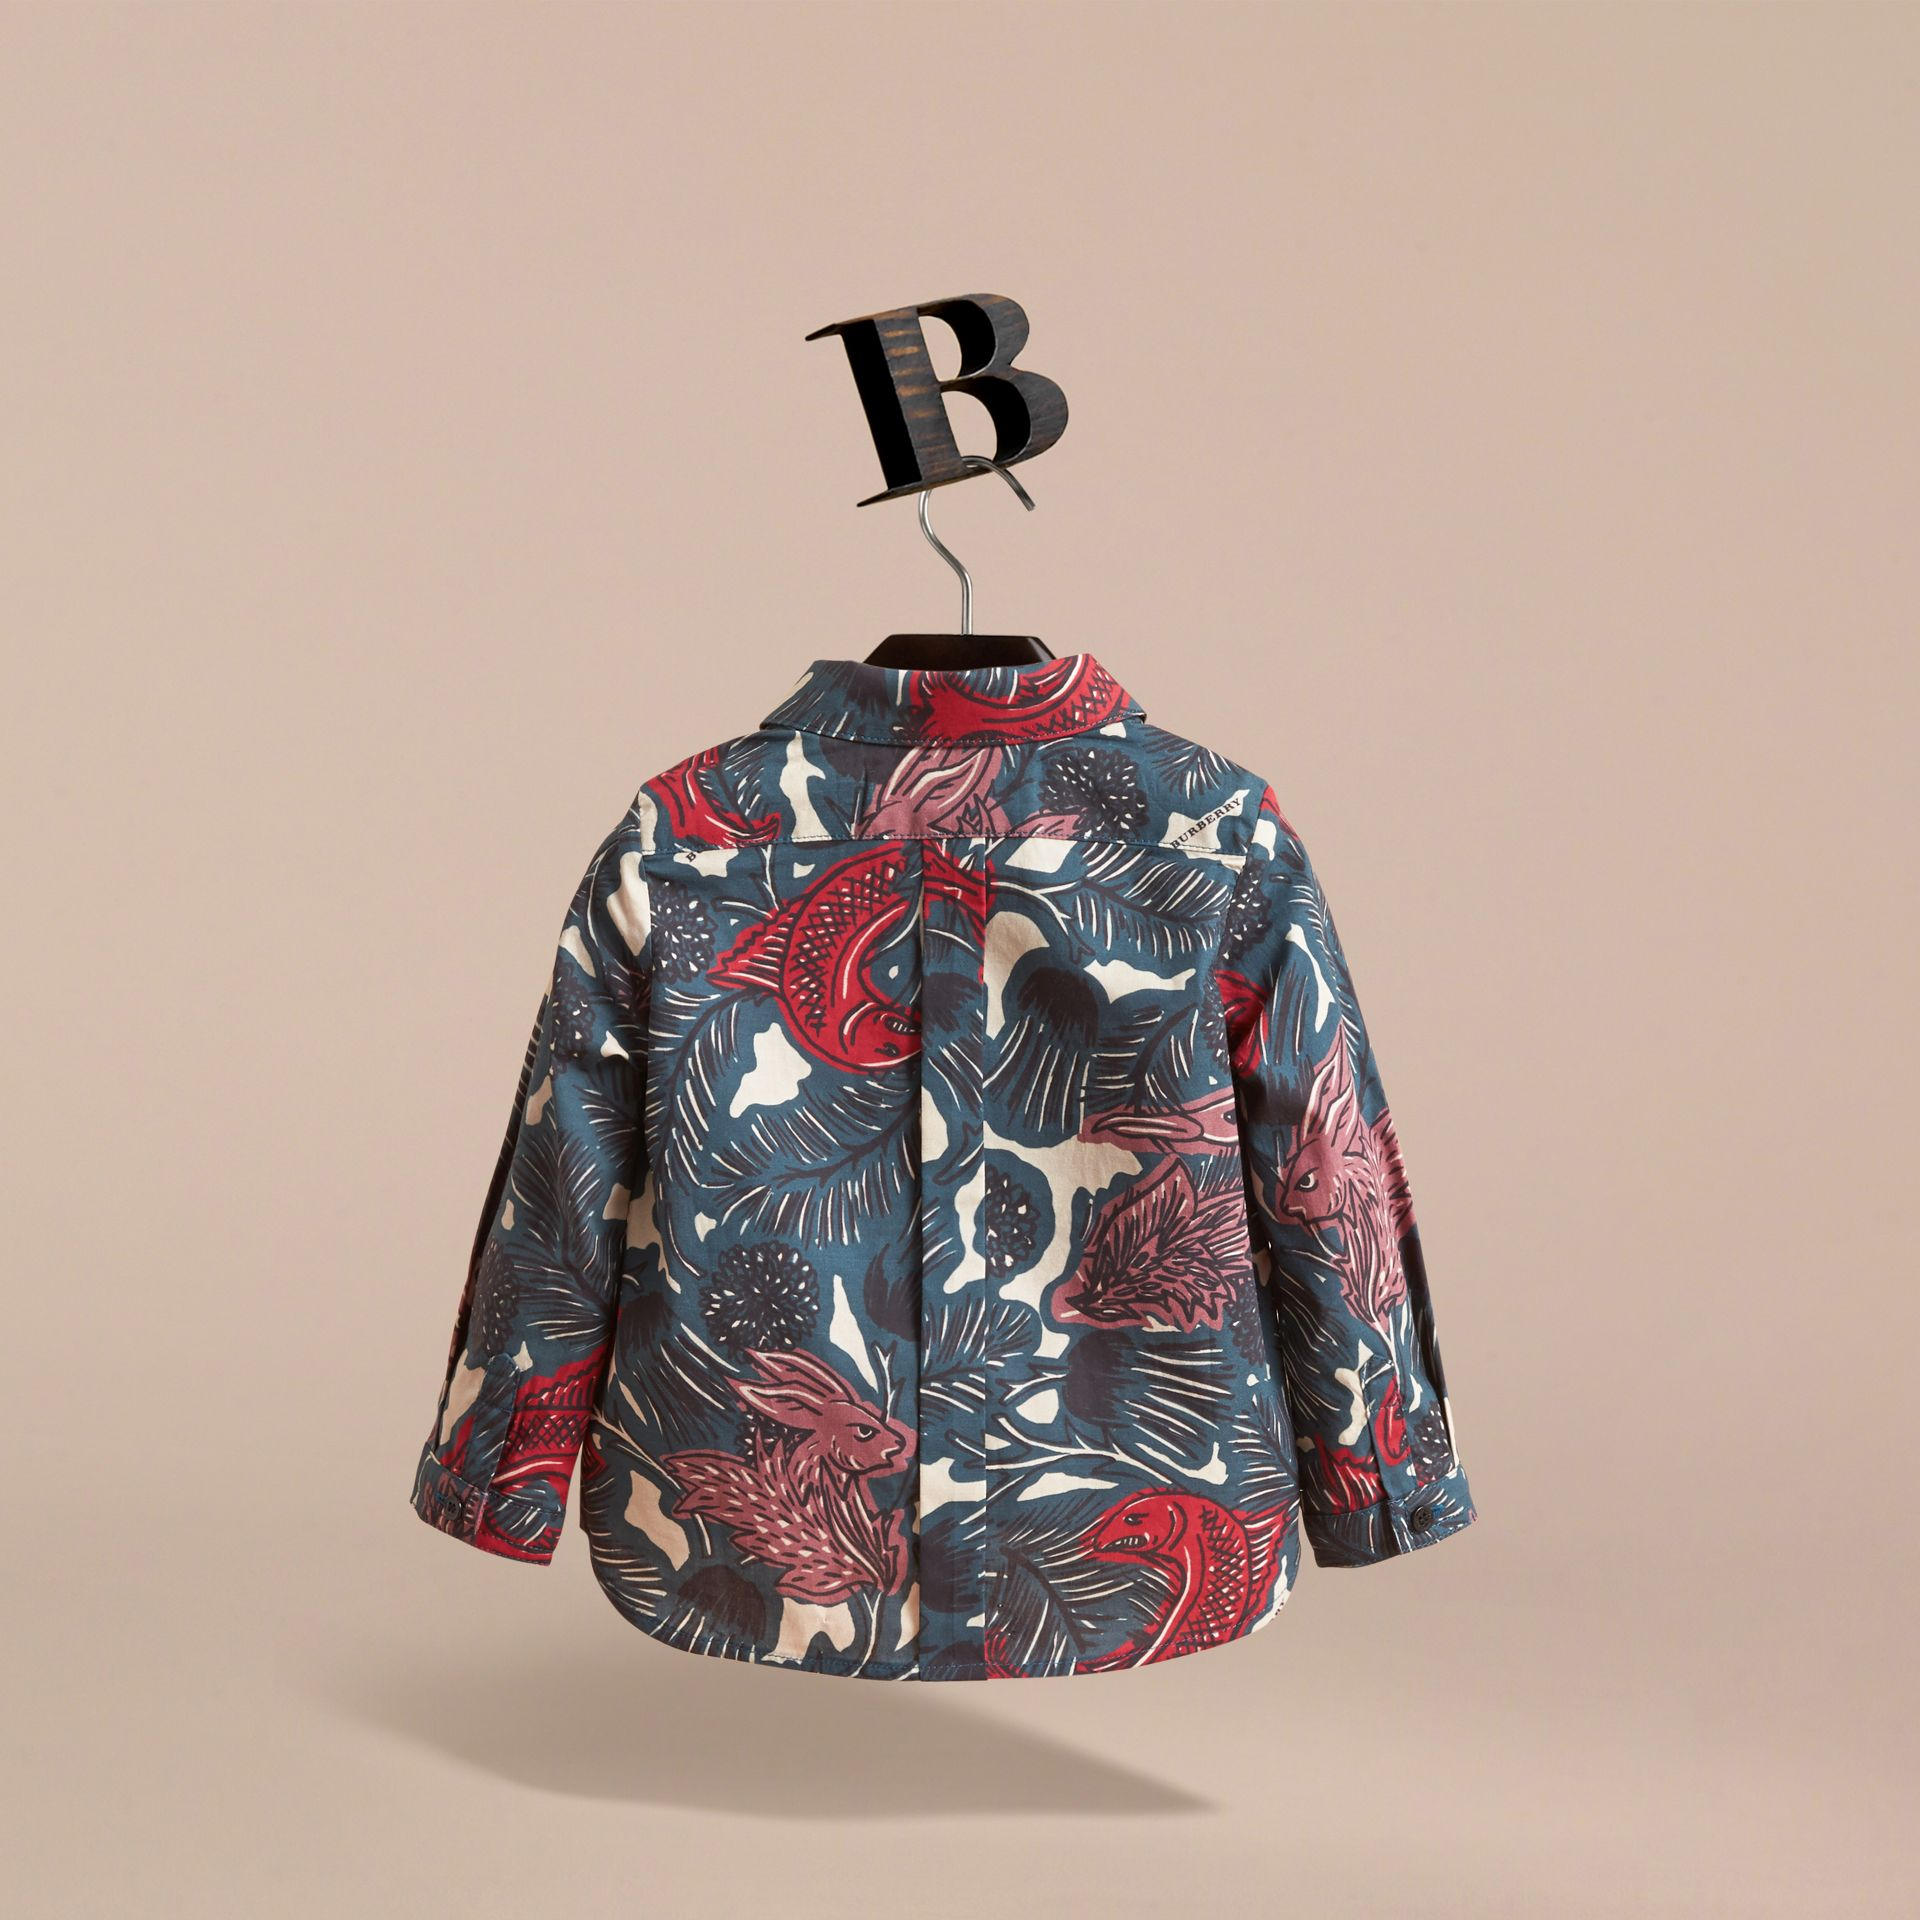 Beasts Print Cotton Shirt | Burberry - gallery image 4